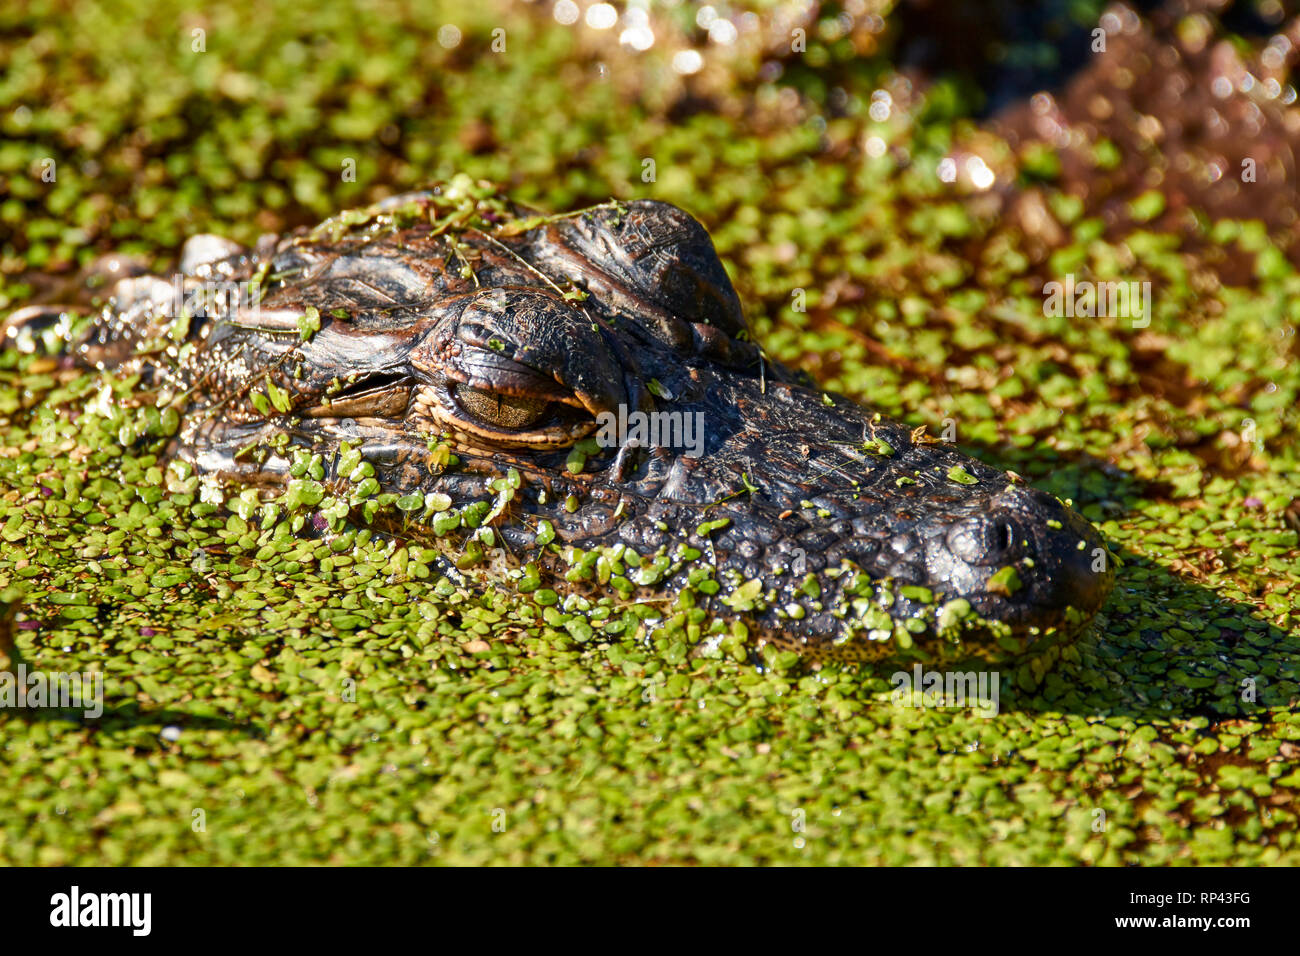 Young Alligator in the Duckweed Stock Photo